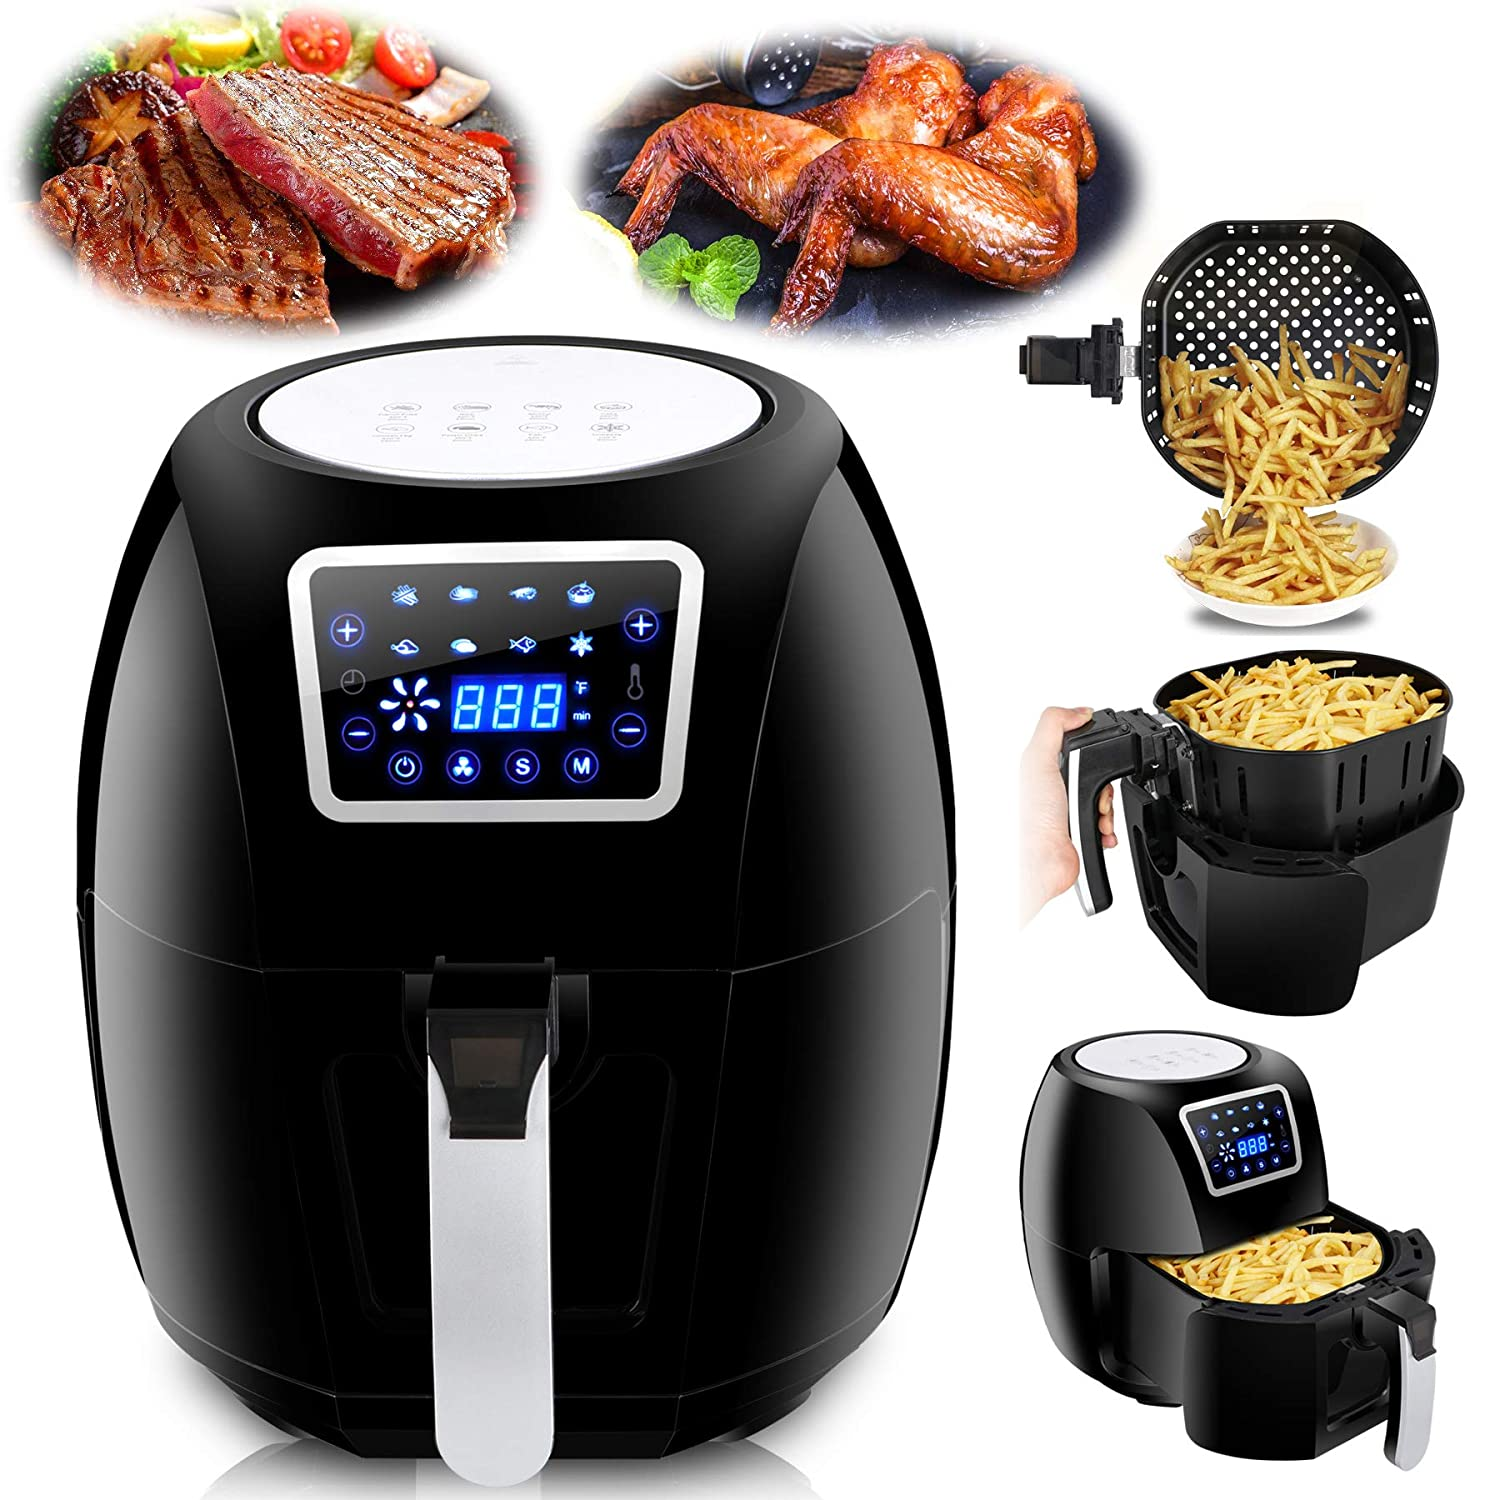 F2C XL 6.3QT 8-in 1 Programmable Electric Oil-Free Air Fryer Hot Deep Fryer Cooker Air Roaster Full Touch Digital LCD Screen Airfryer Fasting Cooking Non-Stick W/Detachable Basket& Recipe Books 1800W (6.3QT Black) F2C-AF10B